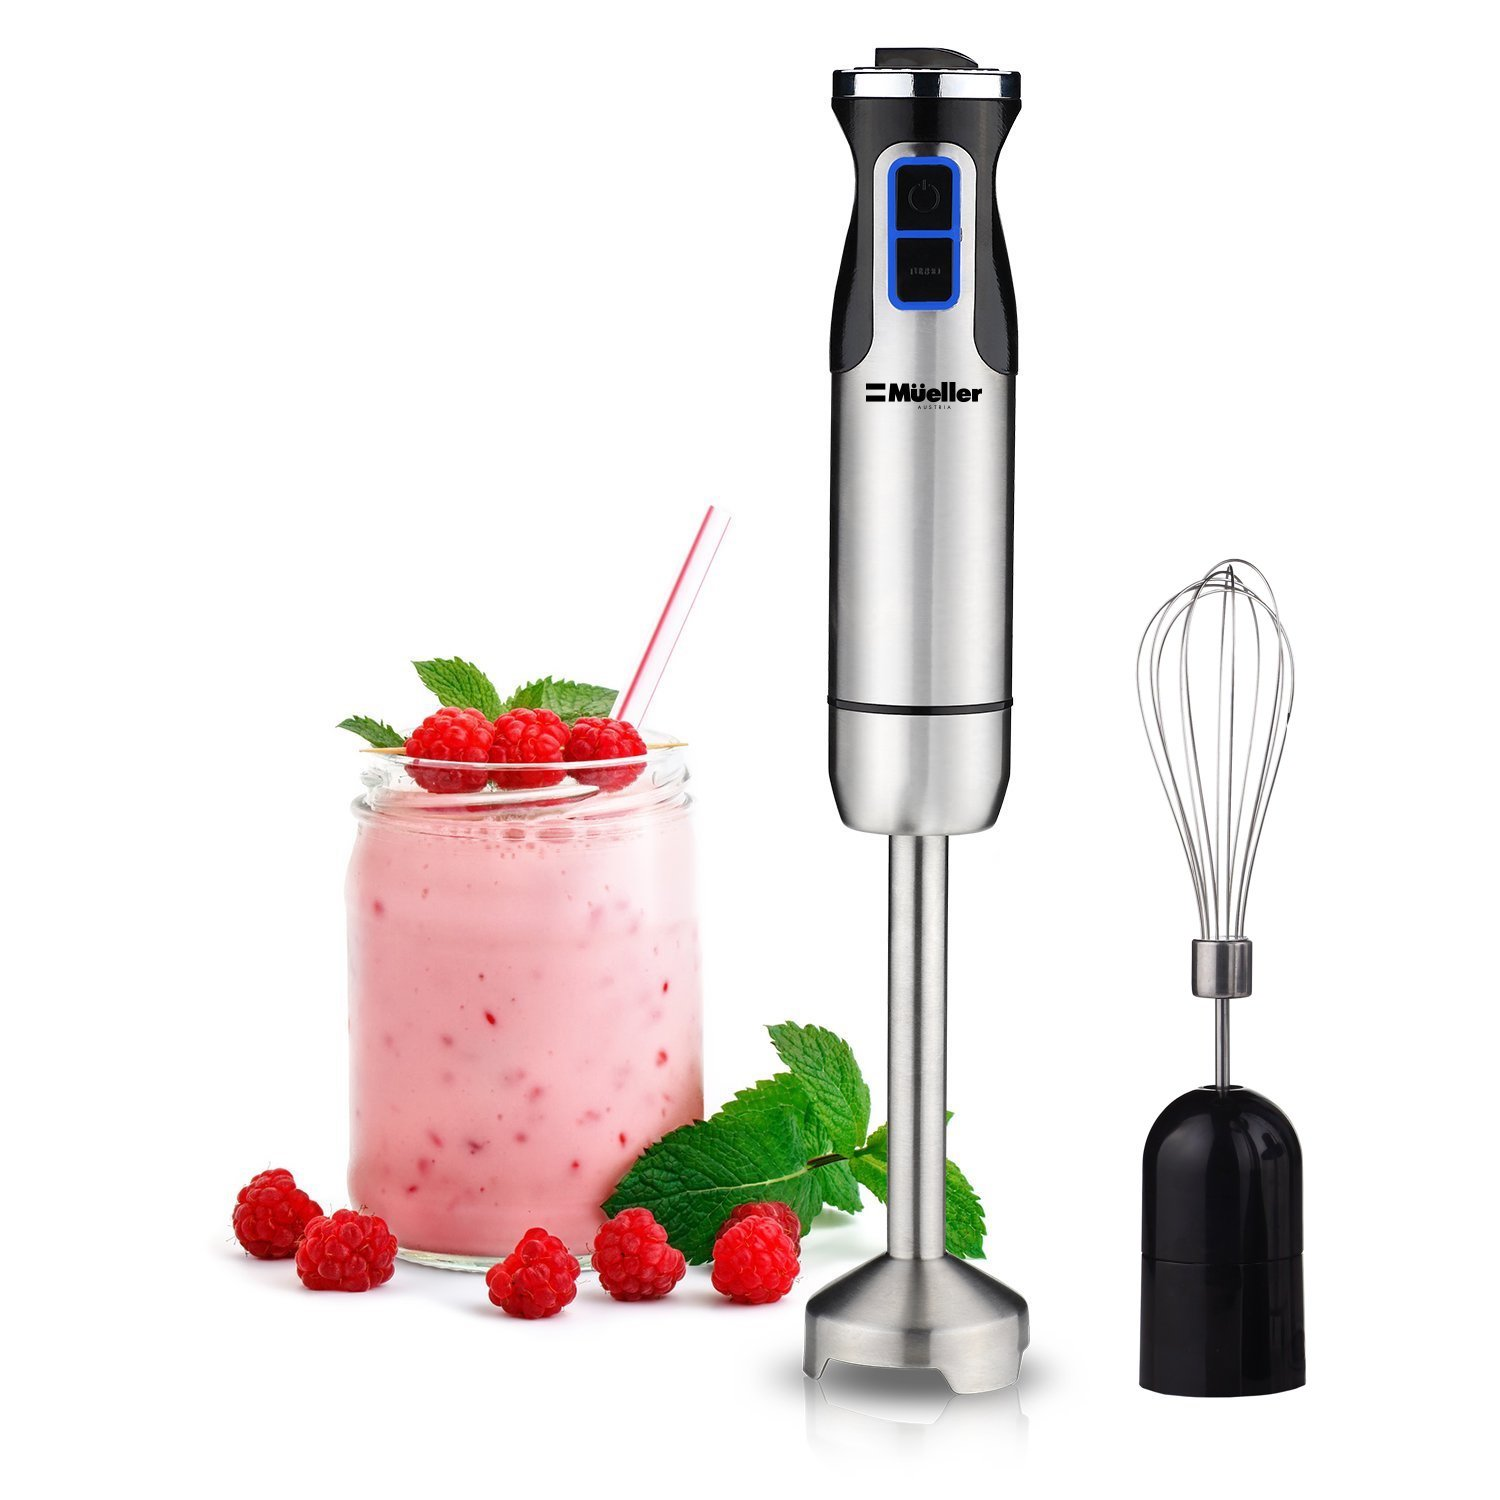 Mueller Ultra-Stick Immersion Blender Black Friday Deal